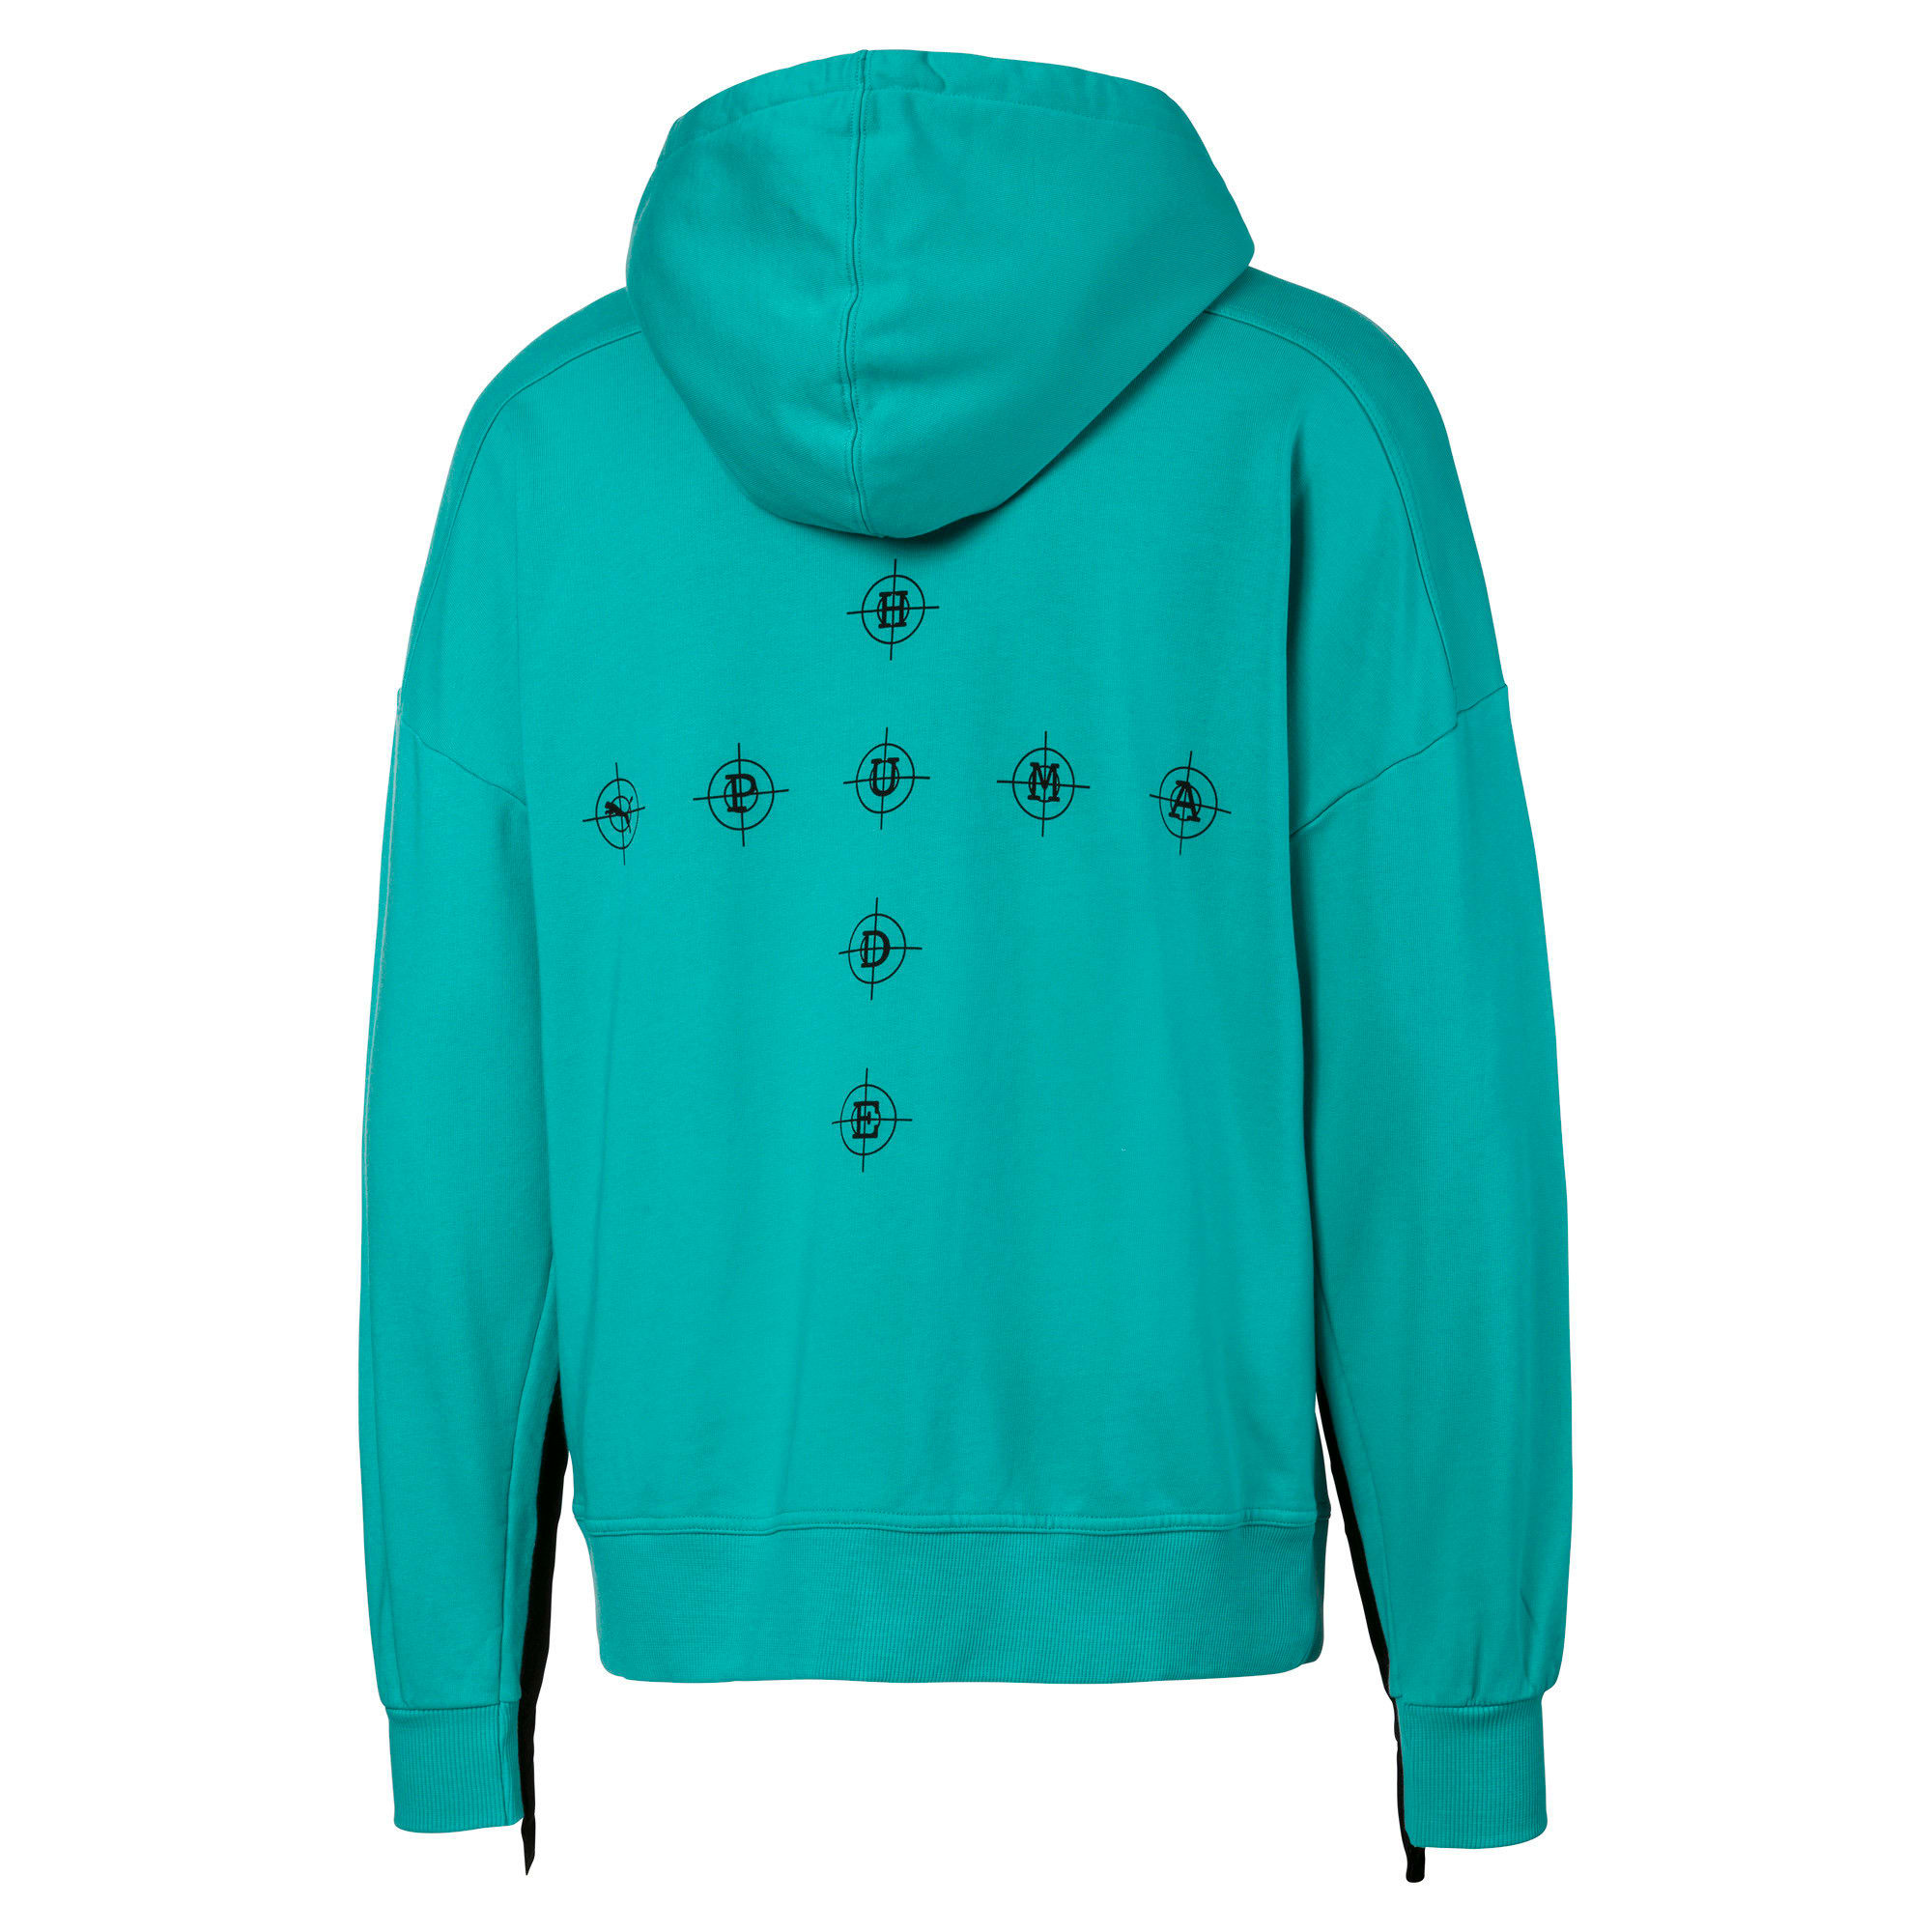 Thumbnail 1 of PUMA x RHUDE Men's Hoodie, Blue Turquoise, medium